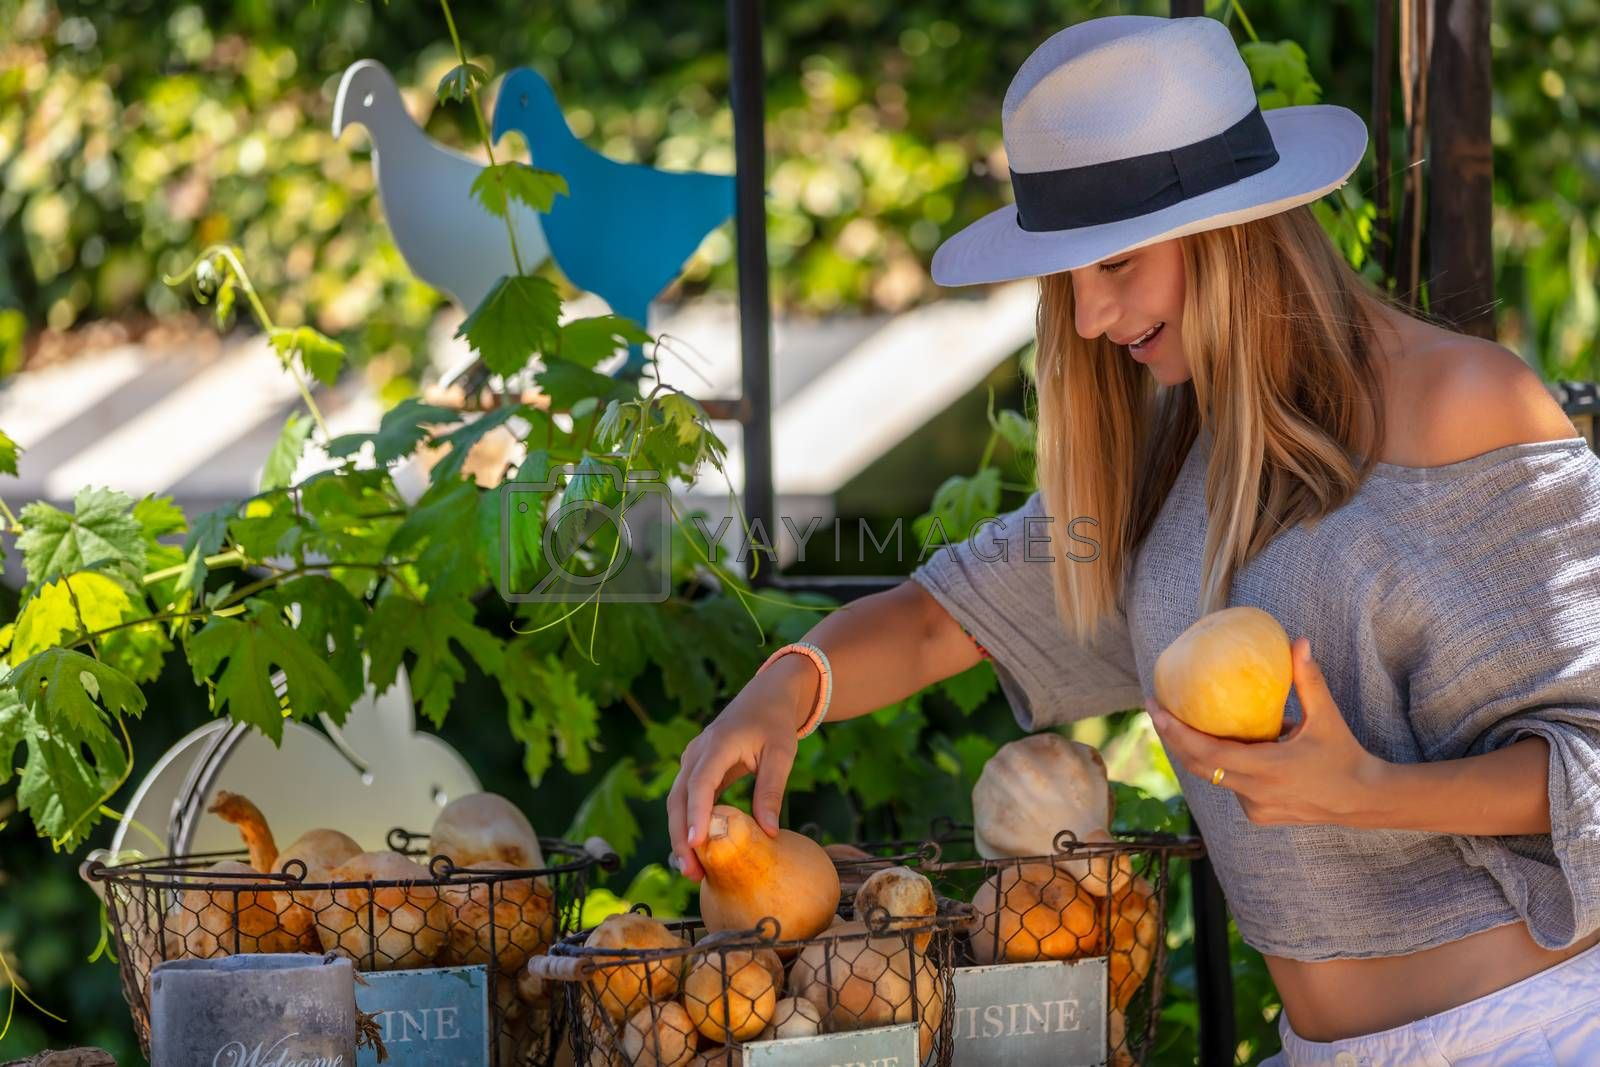 Beautiful Young Female at Outdoors Vegetables Market. With Pleasure Choosing Fresh Ripe Mini Pumpkins. Organic Nutrition. Healthy Lifestyle.